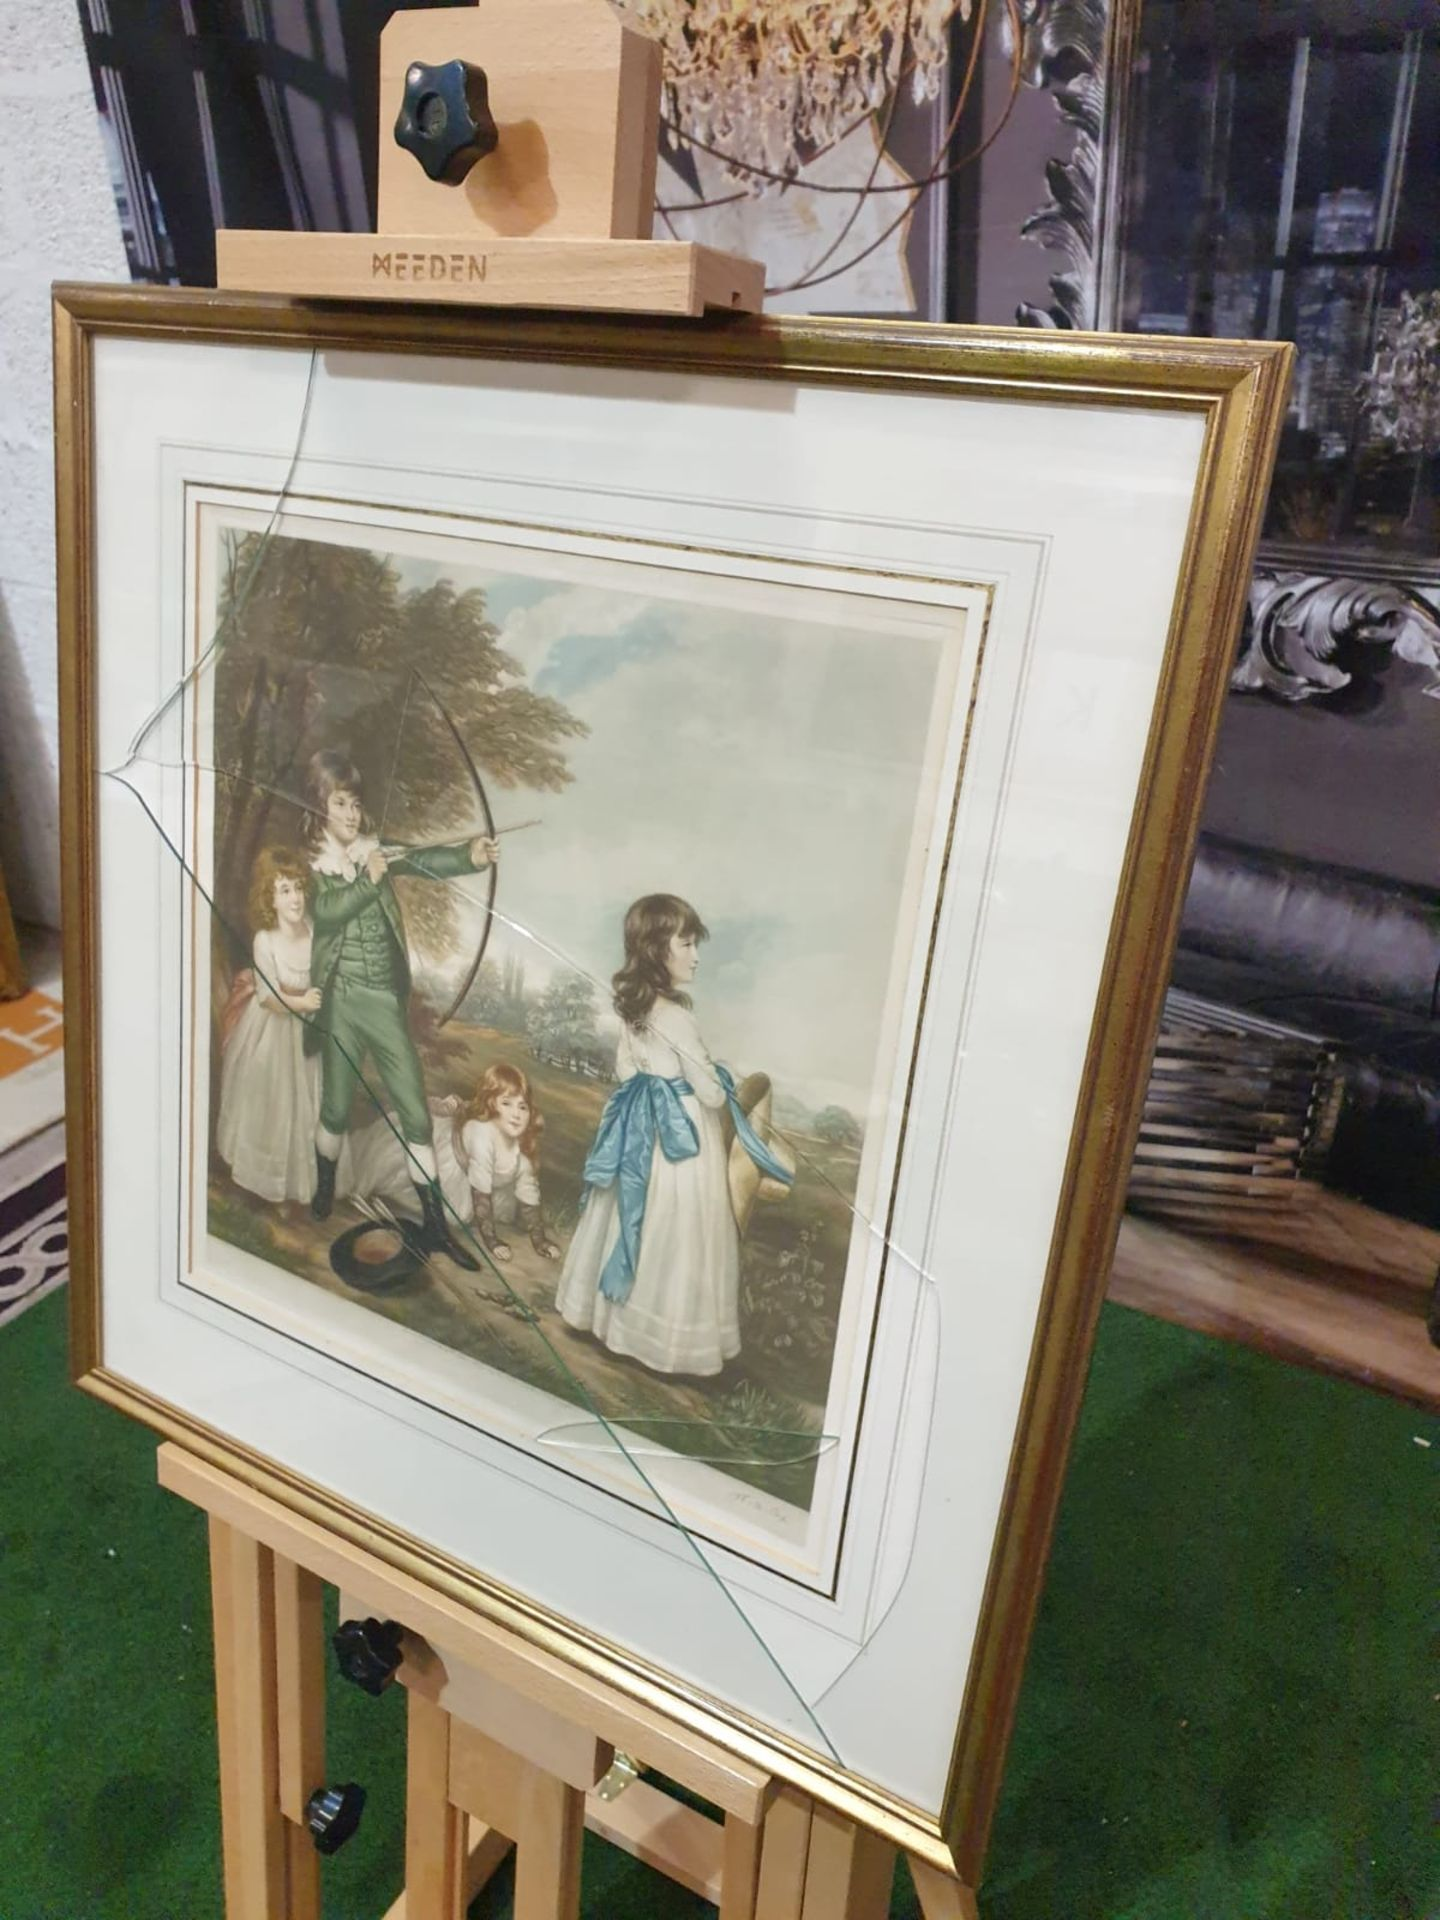 Framed coloured print of 4 Children playing, 1 child doing archery, hat and arrows on ground in - Image 2 of 5